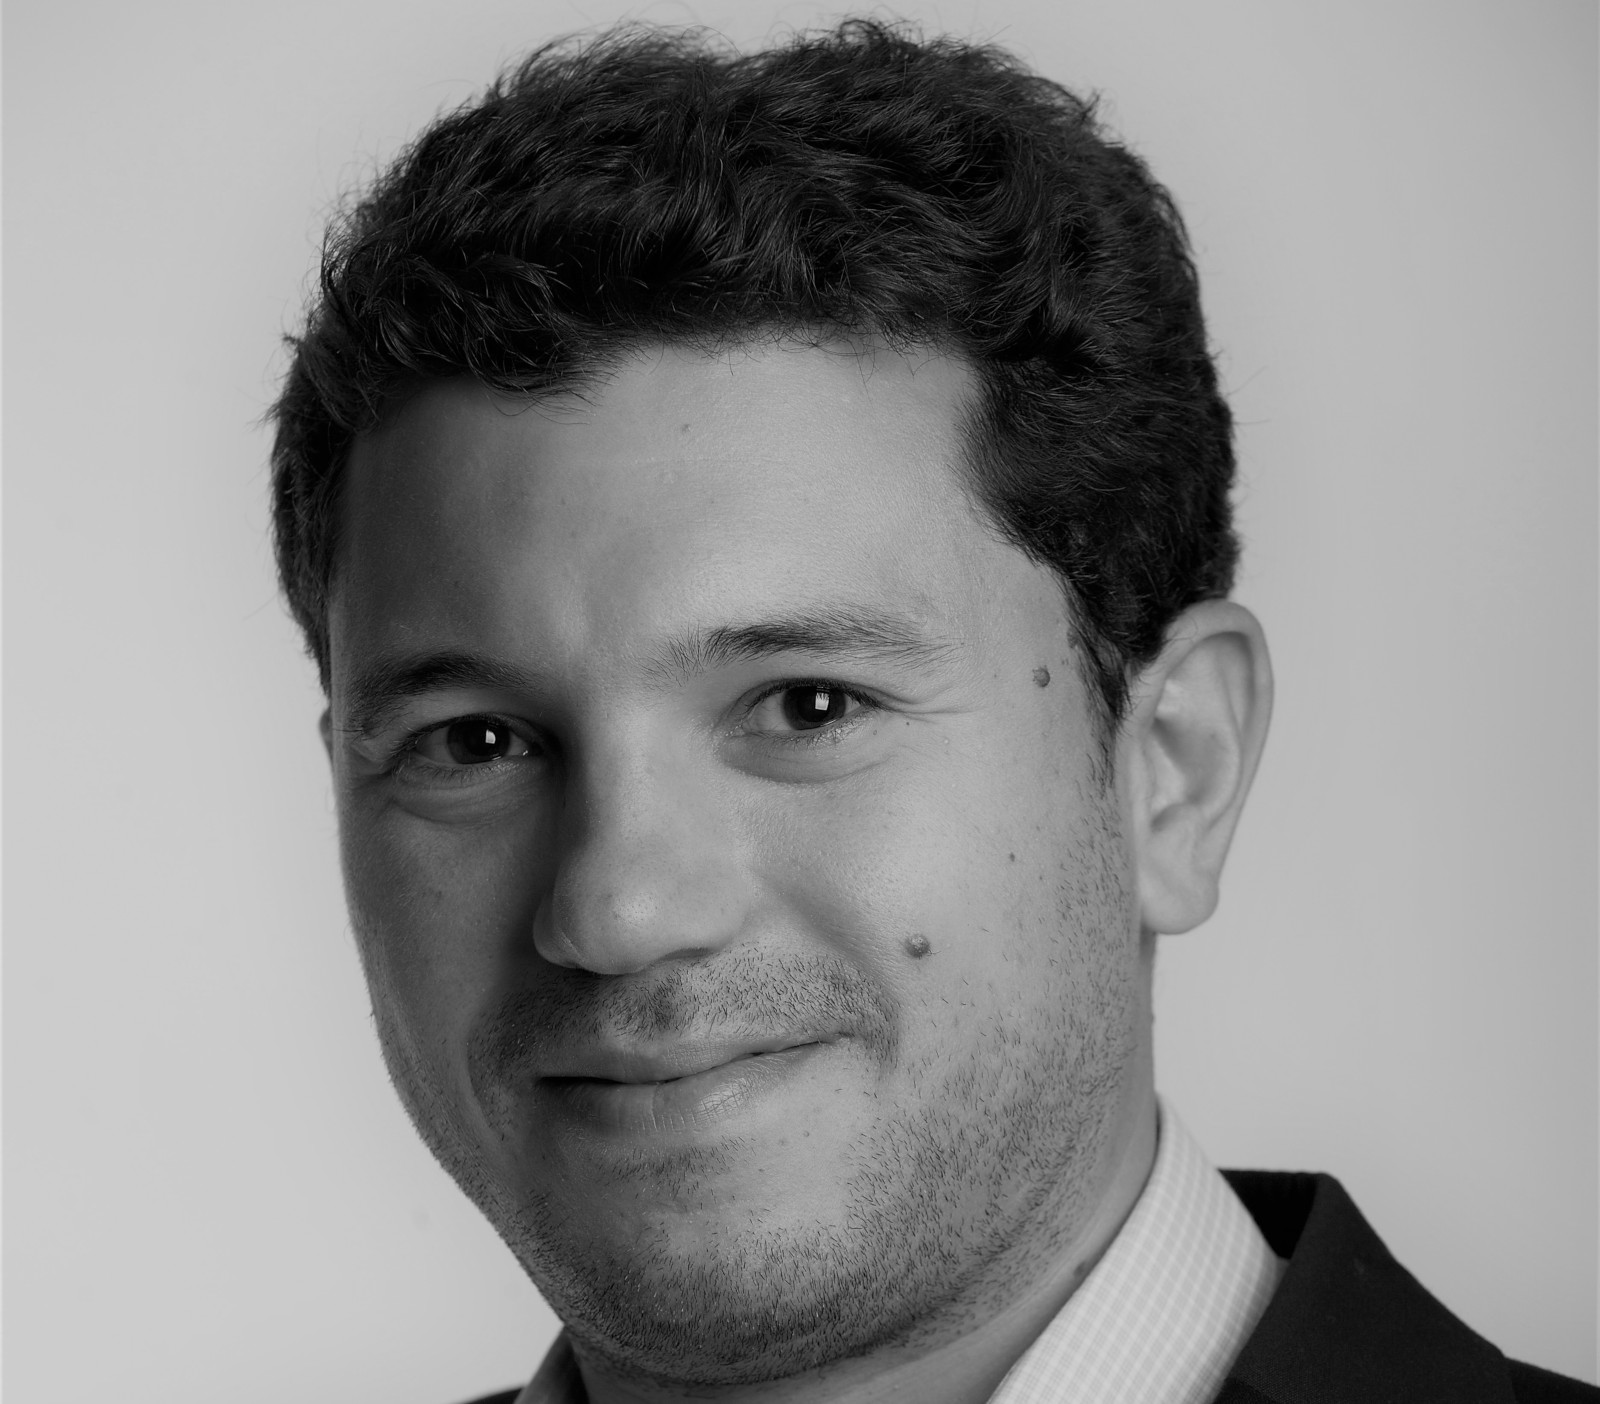 AfricInvest director Yassine Oussaifi